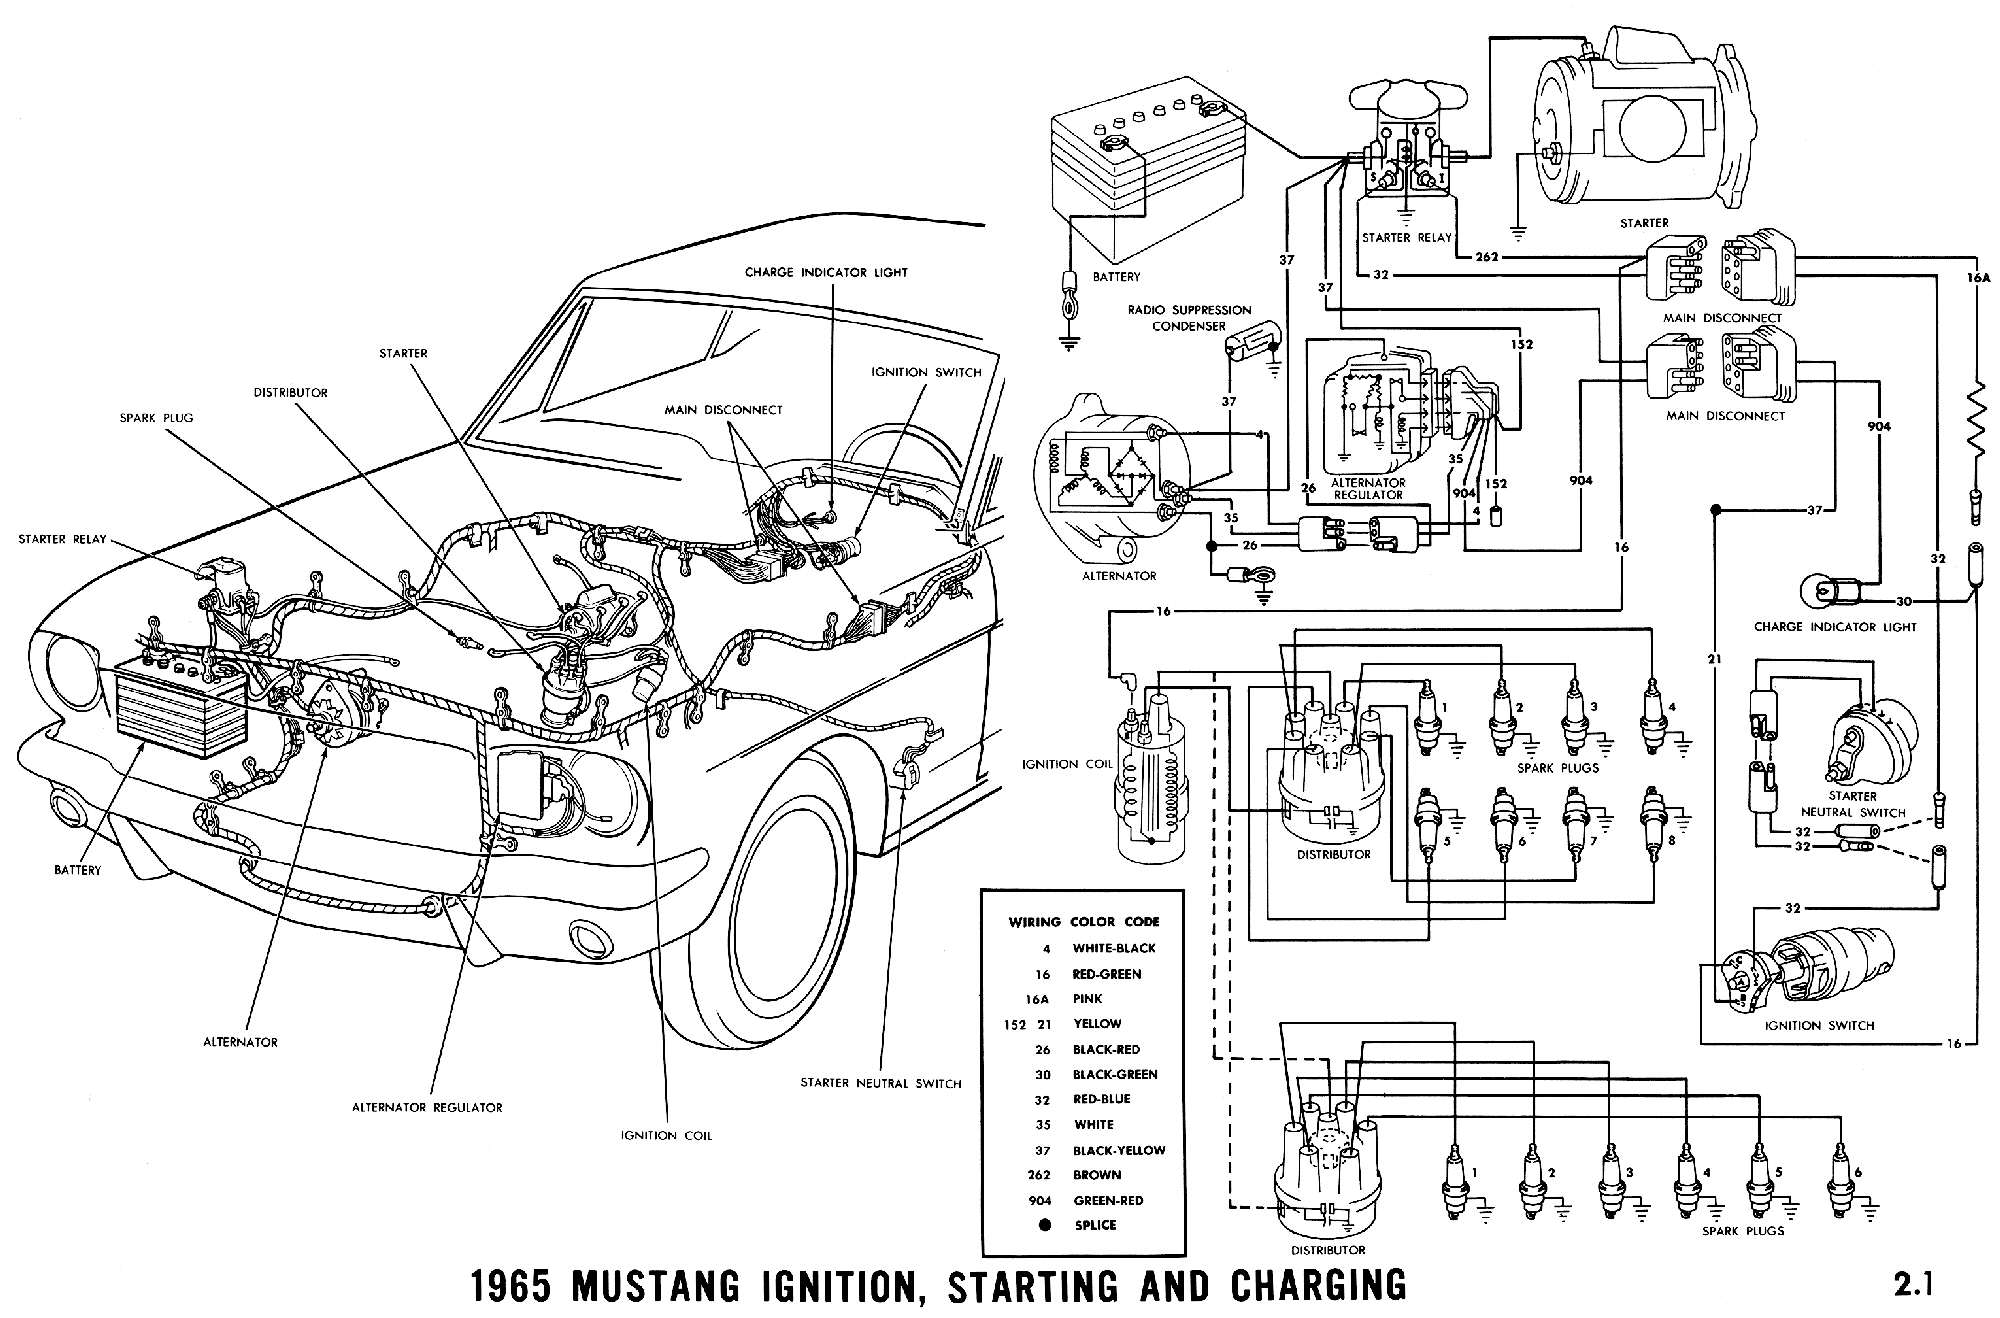 1965 mustang wiring diagrams average joe restoration rh  averagejoerestoration com 1964 Mustang Alternator Wiring Diagrams 1973 Mustang  Alternator Wiring ...